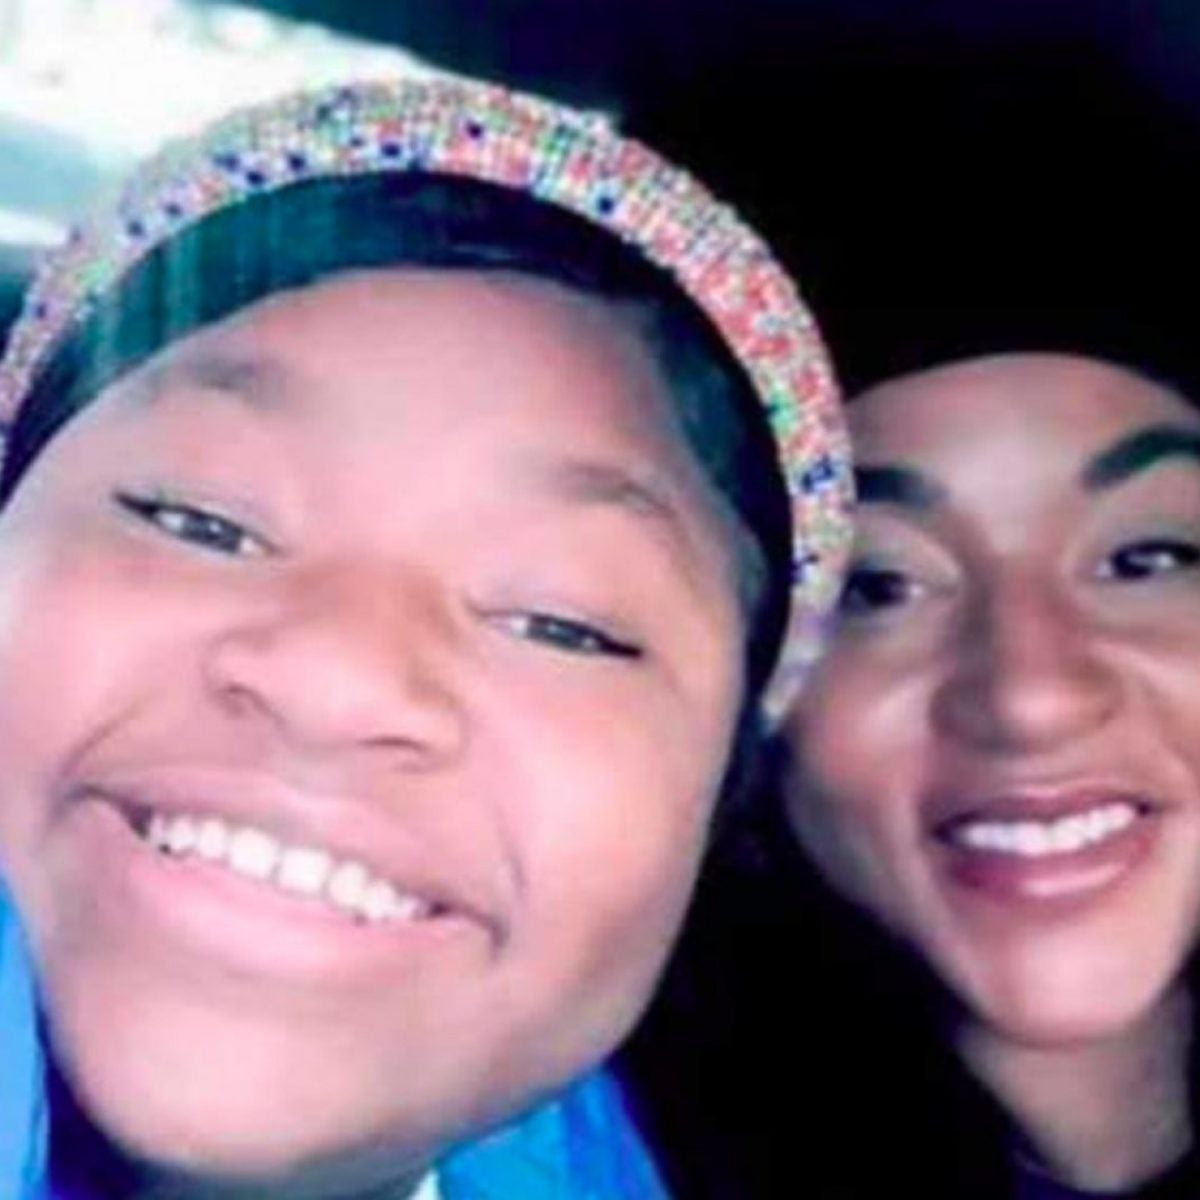 Ohio Cops Yell 'Blue Lives Matter' After Fatally Shooting 15-Year-Old Ma'Khia Bryant